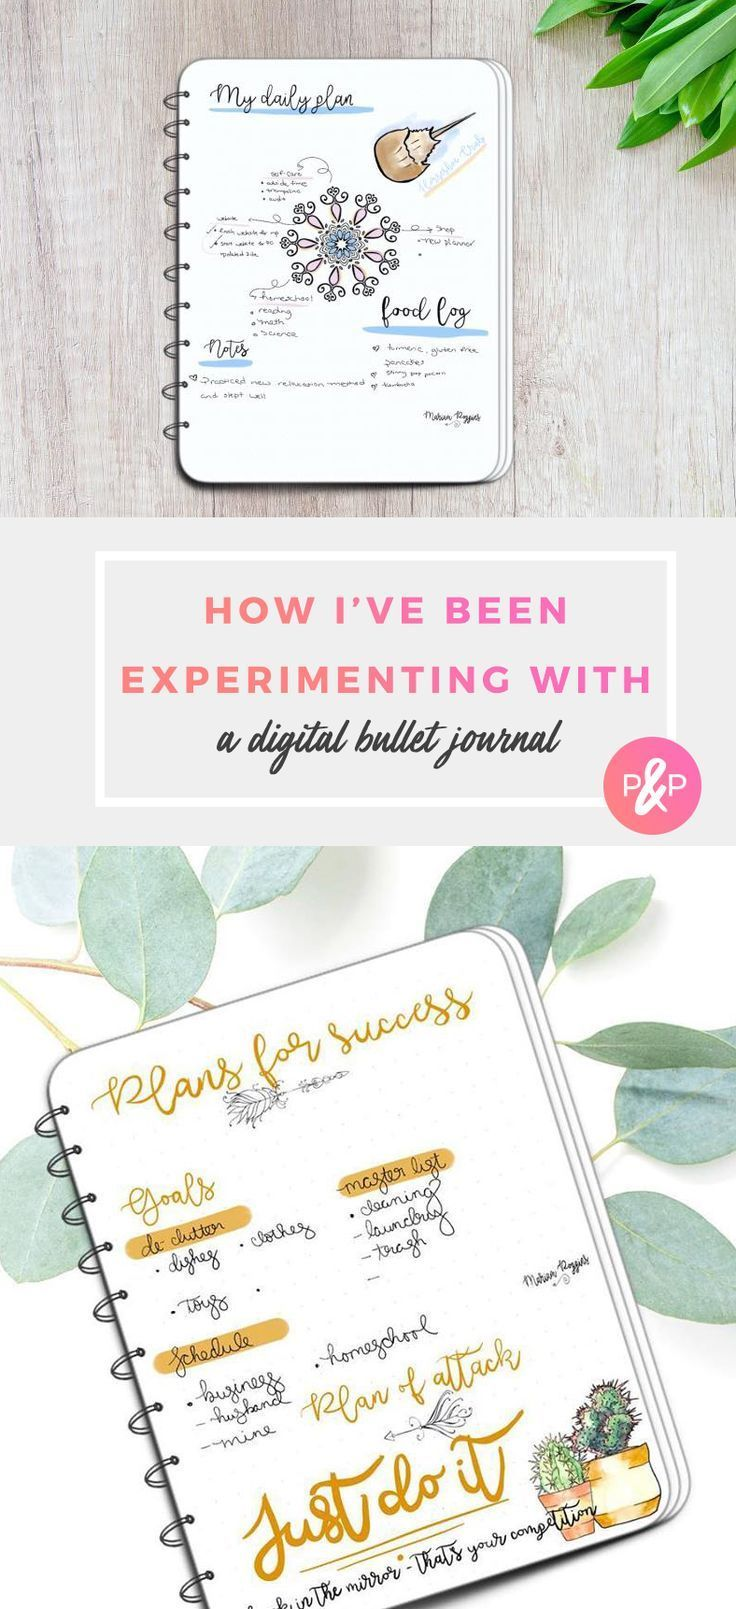 Experimenting with a Digital Bullet Journal http://productiveandpretty.com/digital-bullet-journal/?utm_campaign=coschedule&utm_source=pinterest&utm_medium=Productive%20and%20Pretty&utm_content=Experimenting%20with%20a%20Digital%20Bullet%20Journal